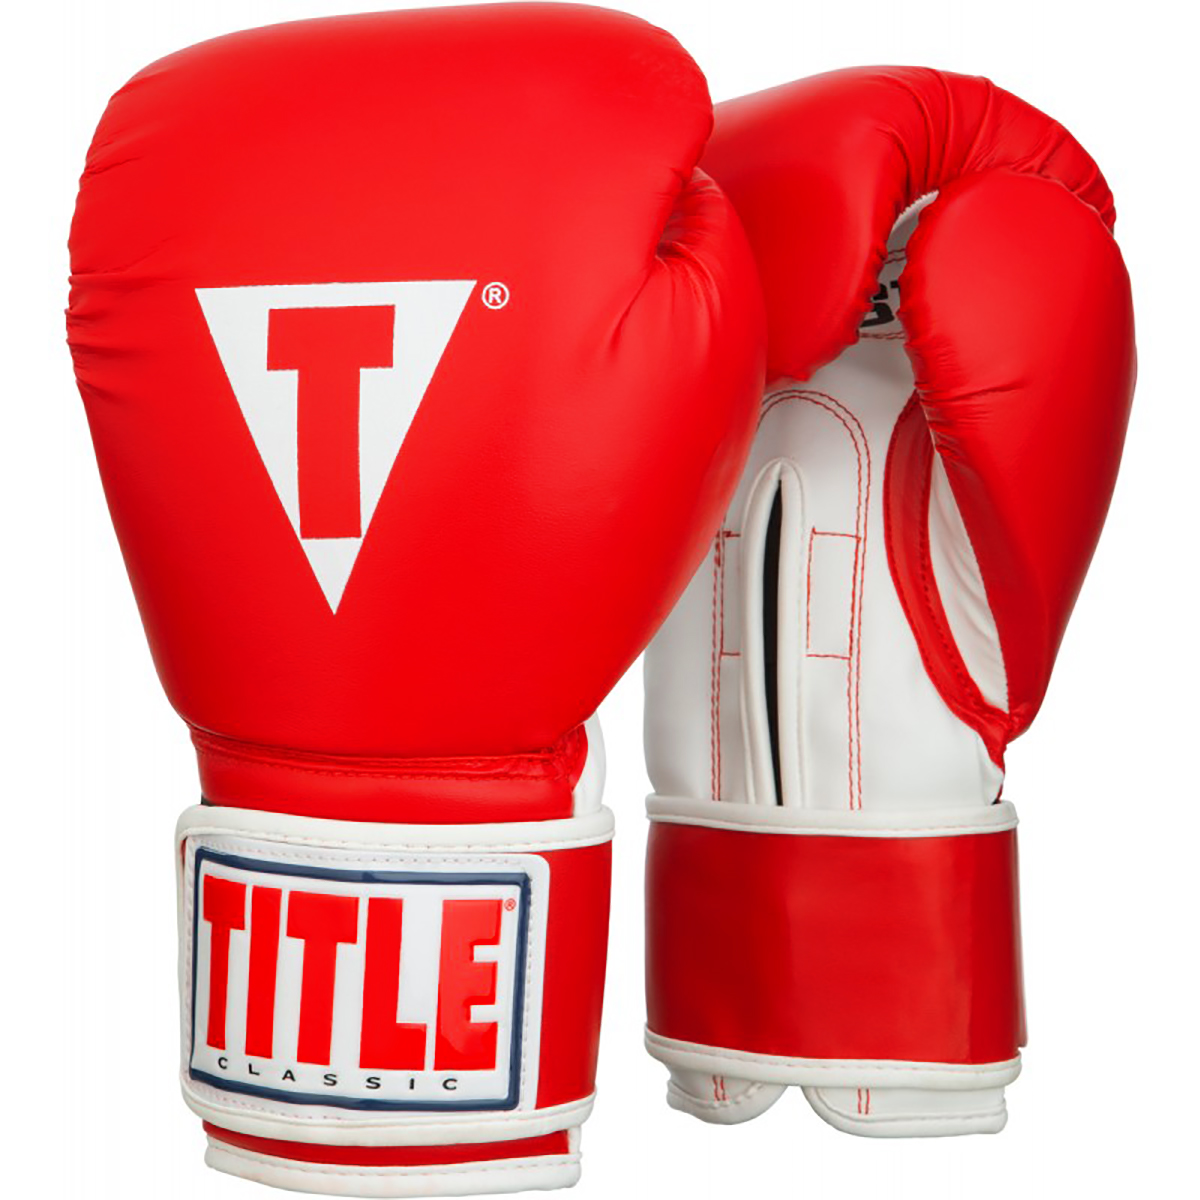 Title Boxing Classic Pro Style Hook and Loop Training Gloves - Red/White